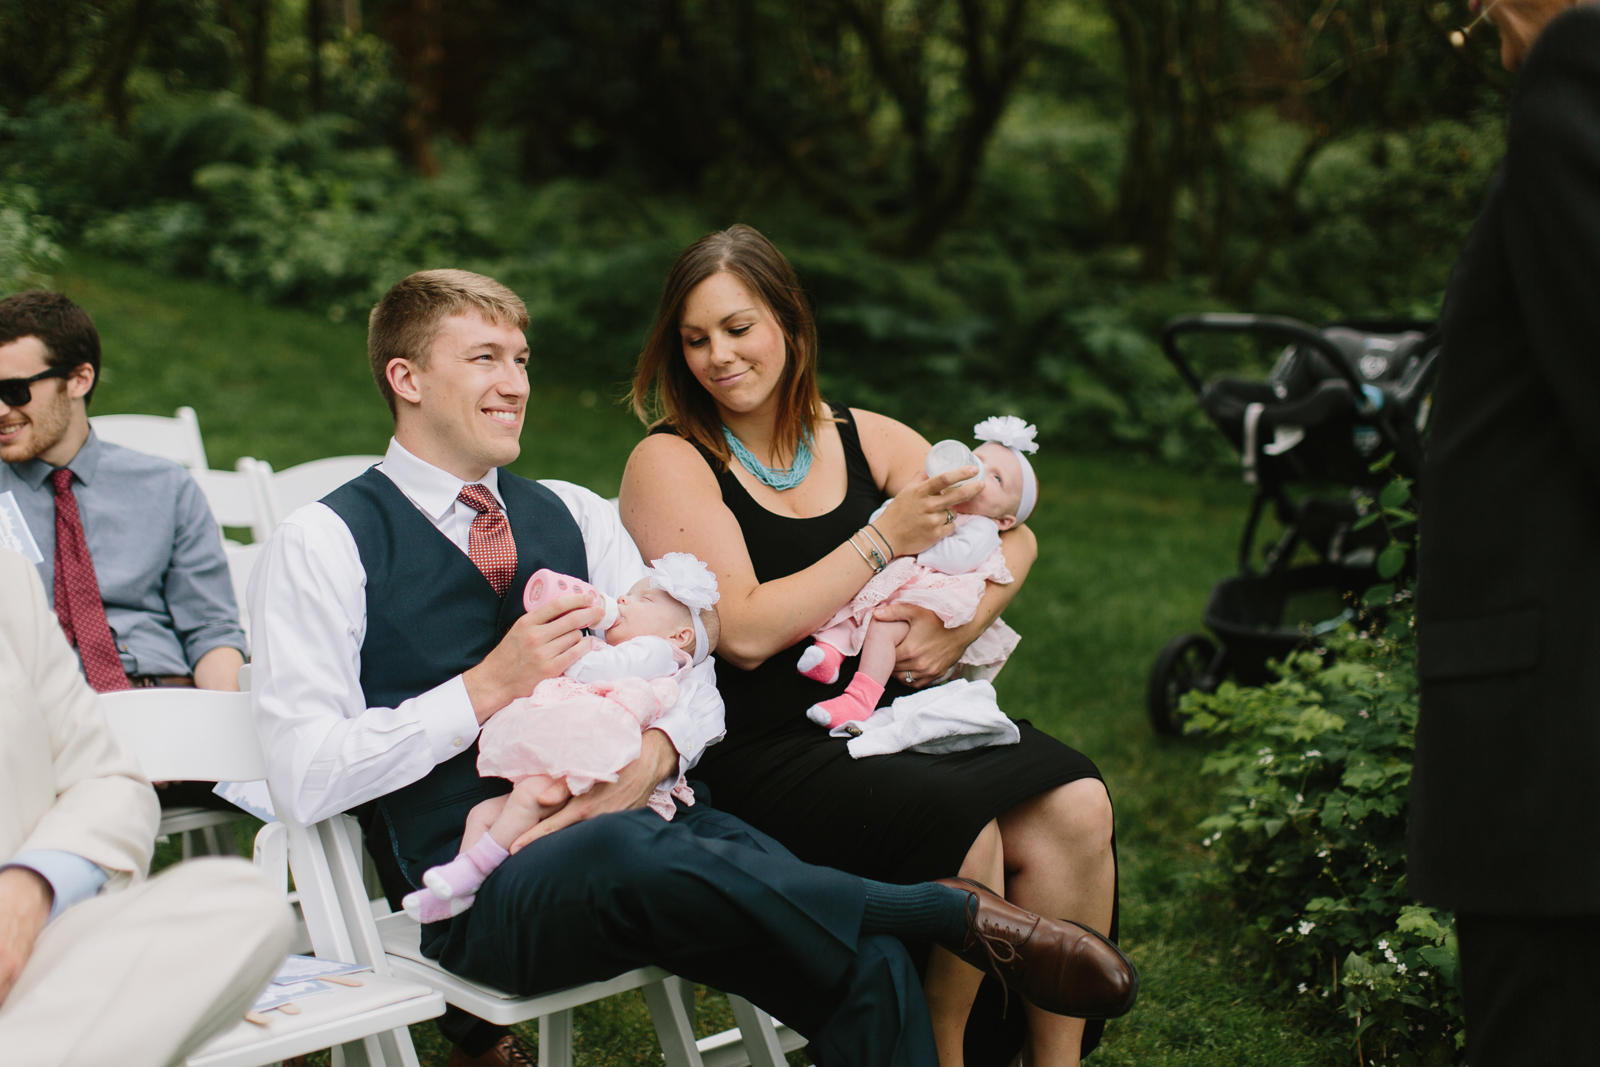 guests feed their twins before the ceremony at Bridal Veil Lakes in Corbett, OR